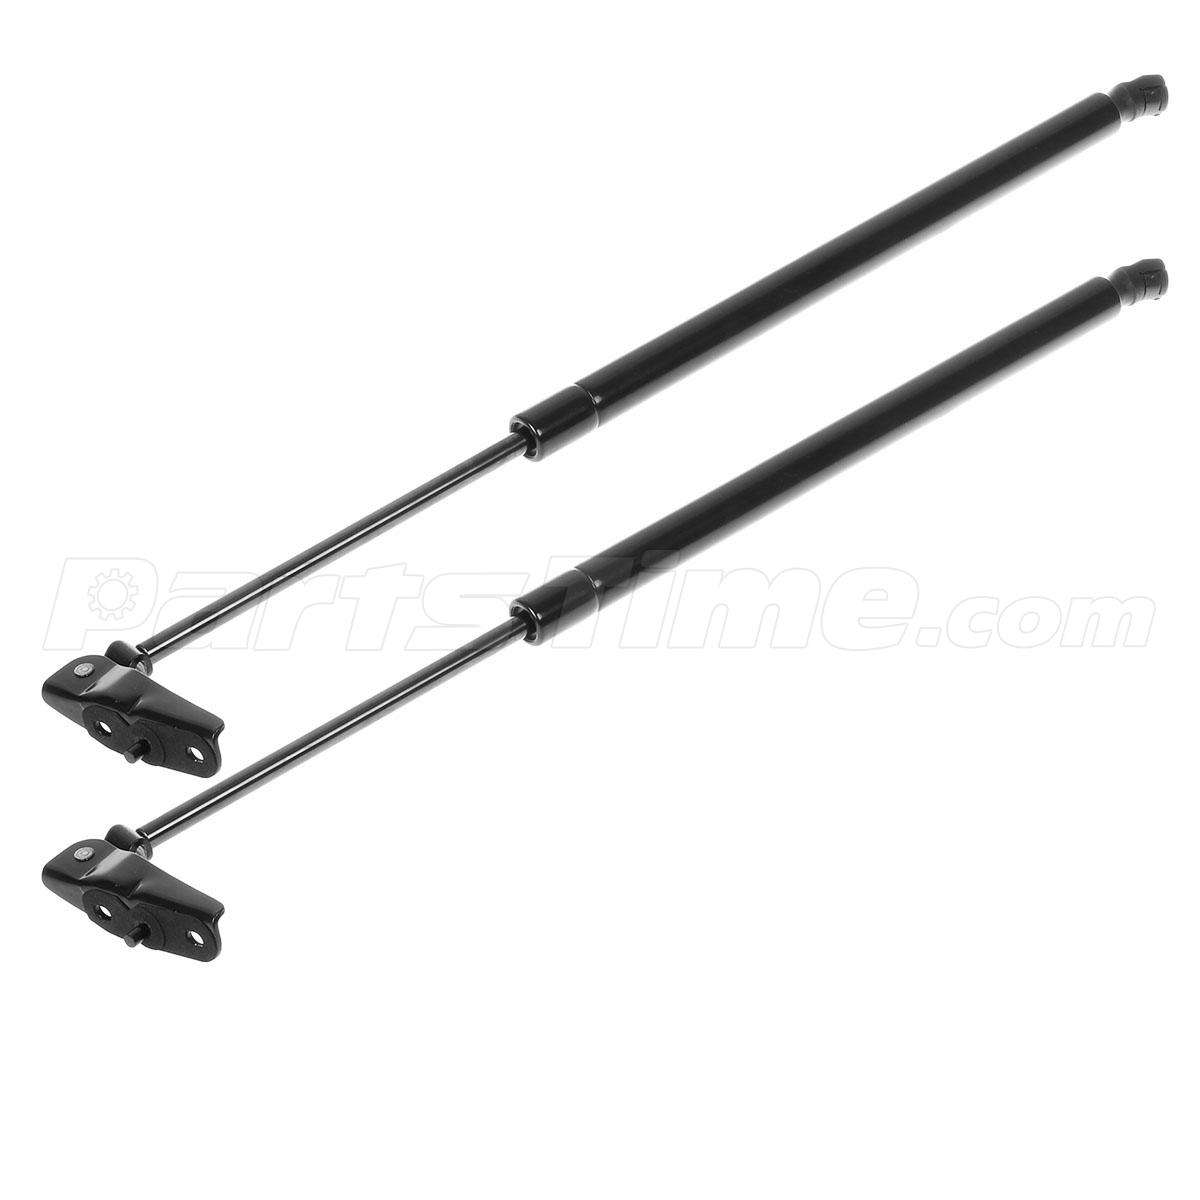 Toyota Celica 1994 Oespectrum Strut: 1Pair Rear Hatch Lift Supports Shocks Struts Fits 1994